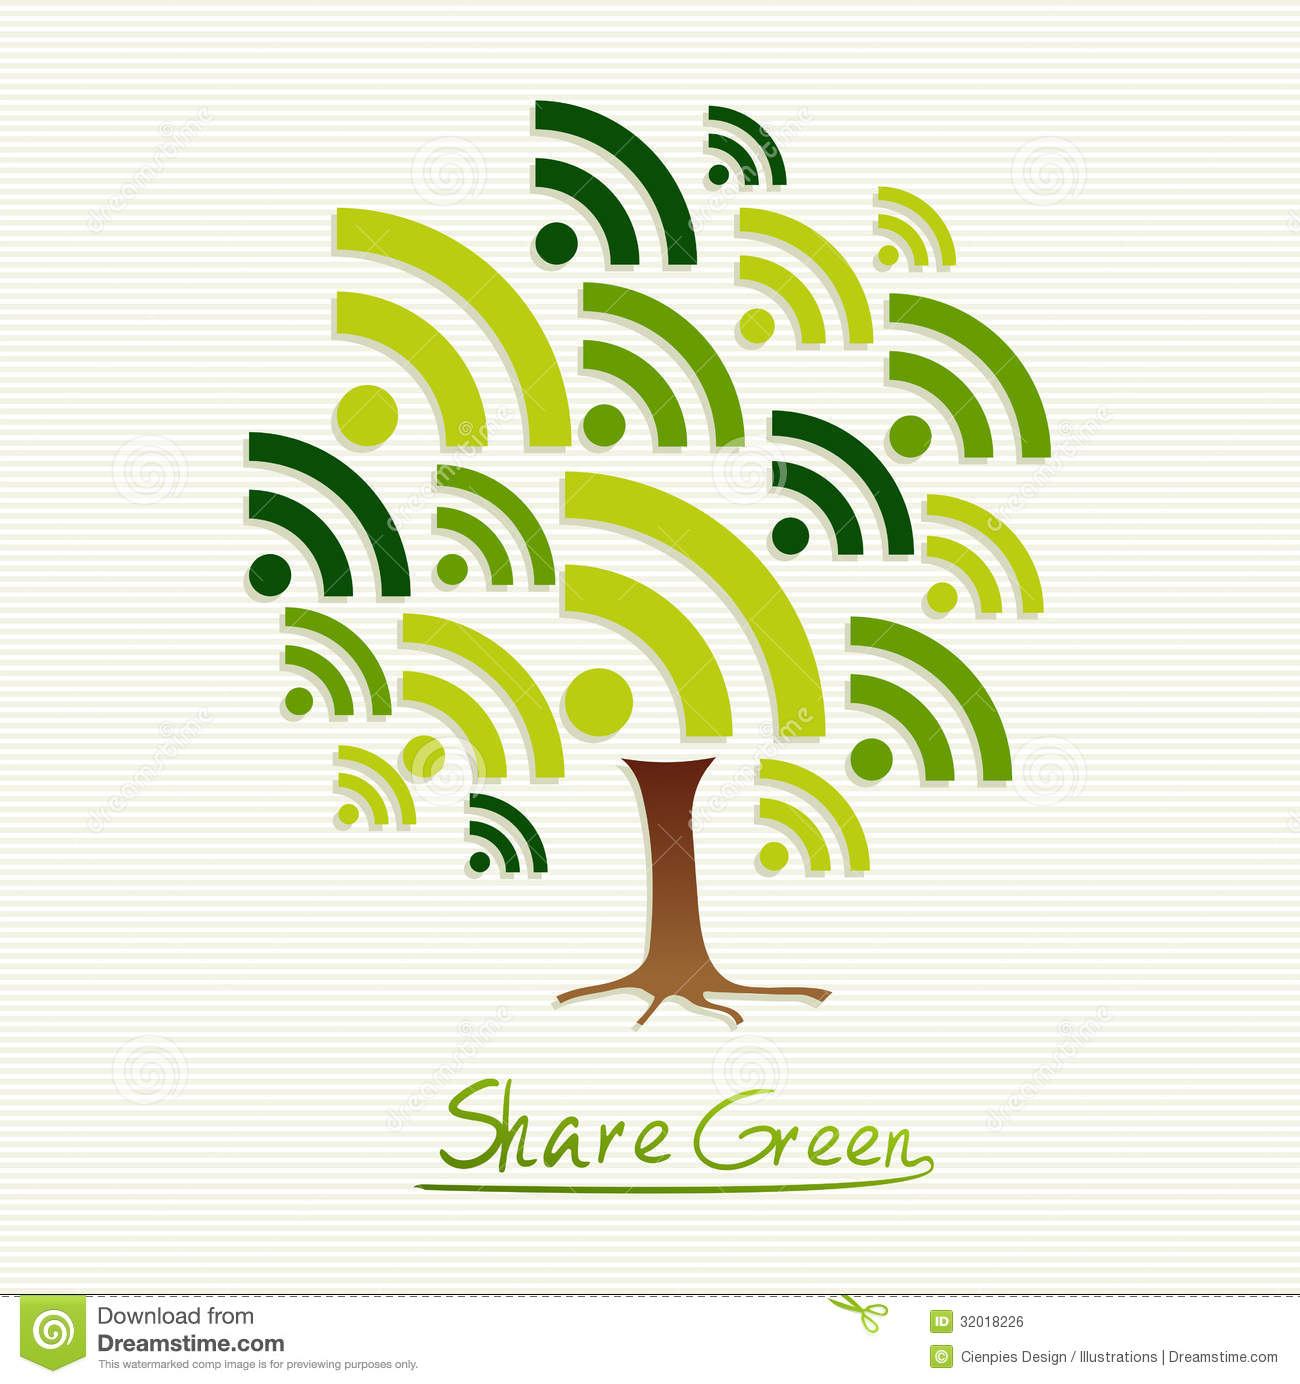 Green Concept Share Icon Tree Stock Vector - Illustration of green ...